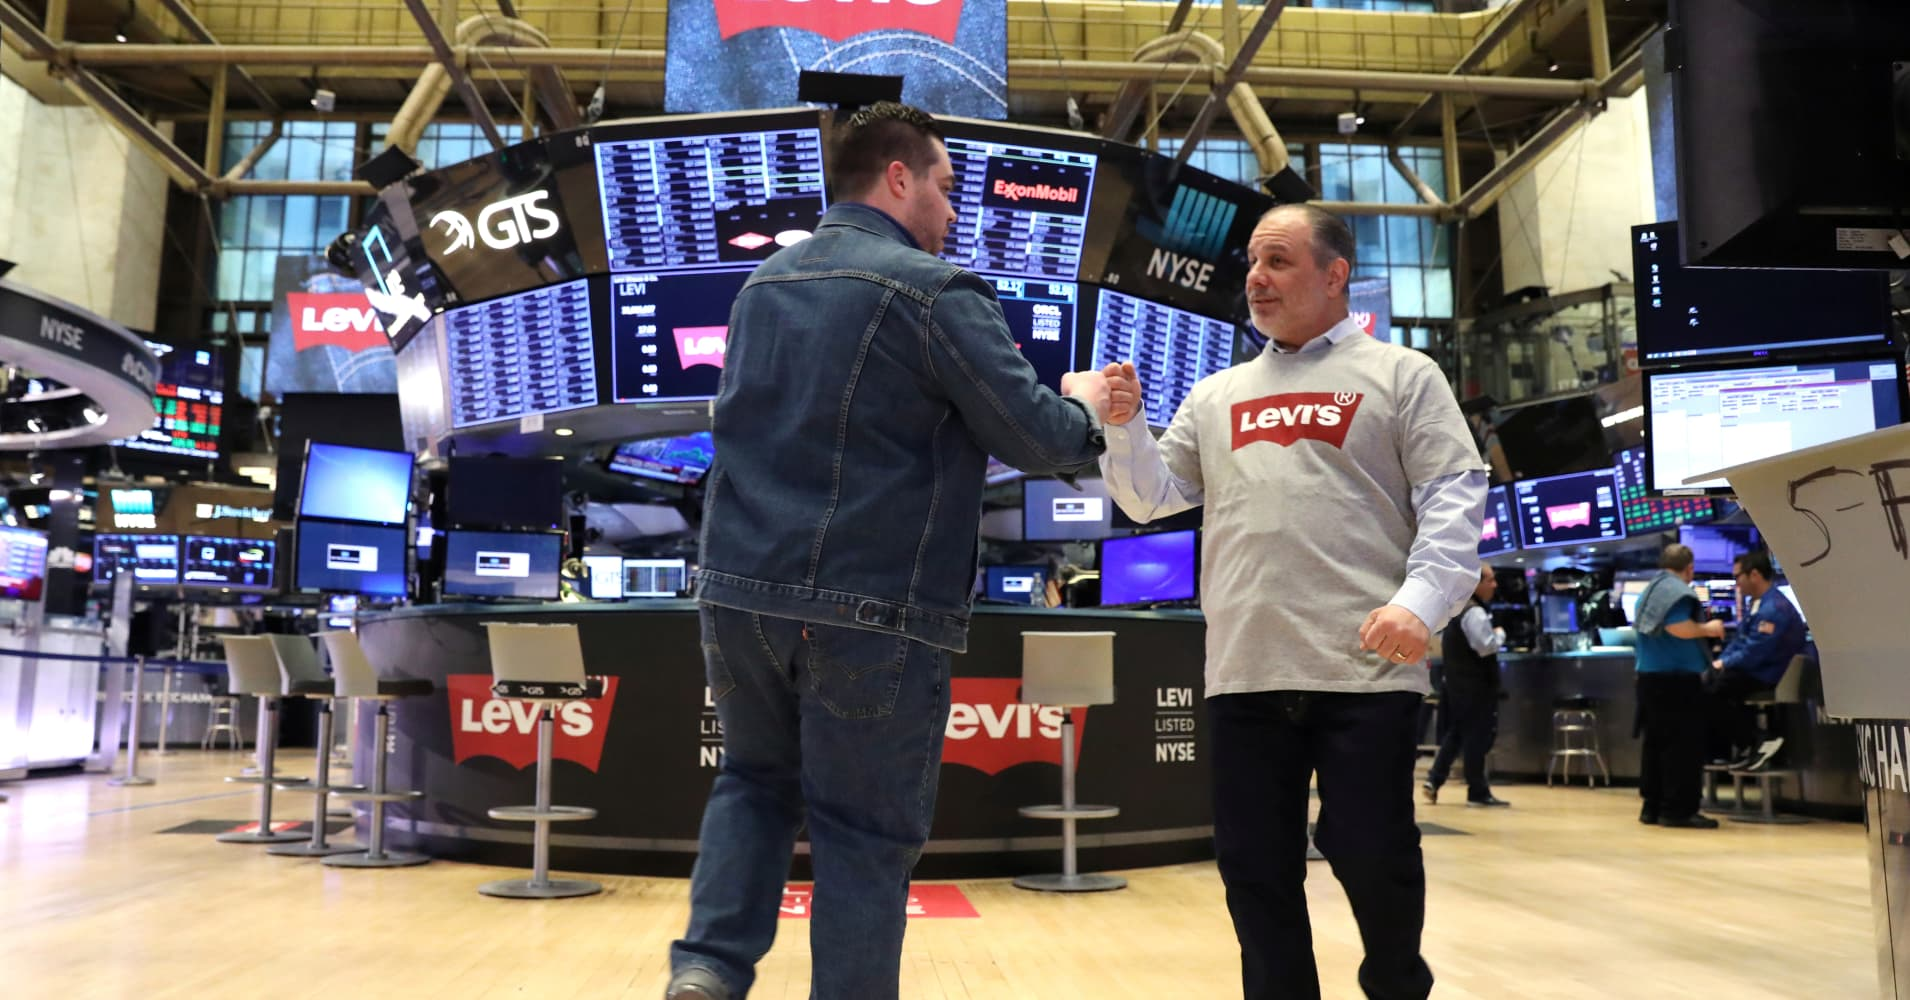 IPOs are red hot, doubling the return of the market, as Levi Strauss kicks off wave of offerings